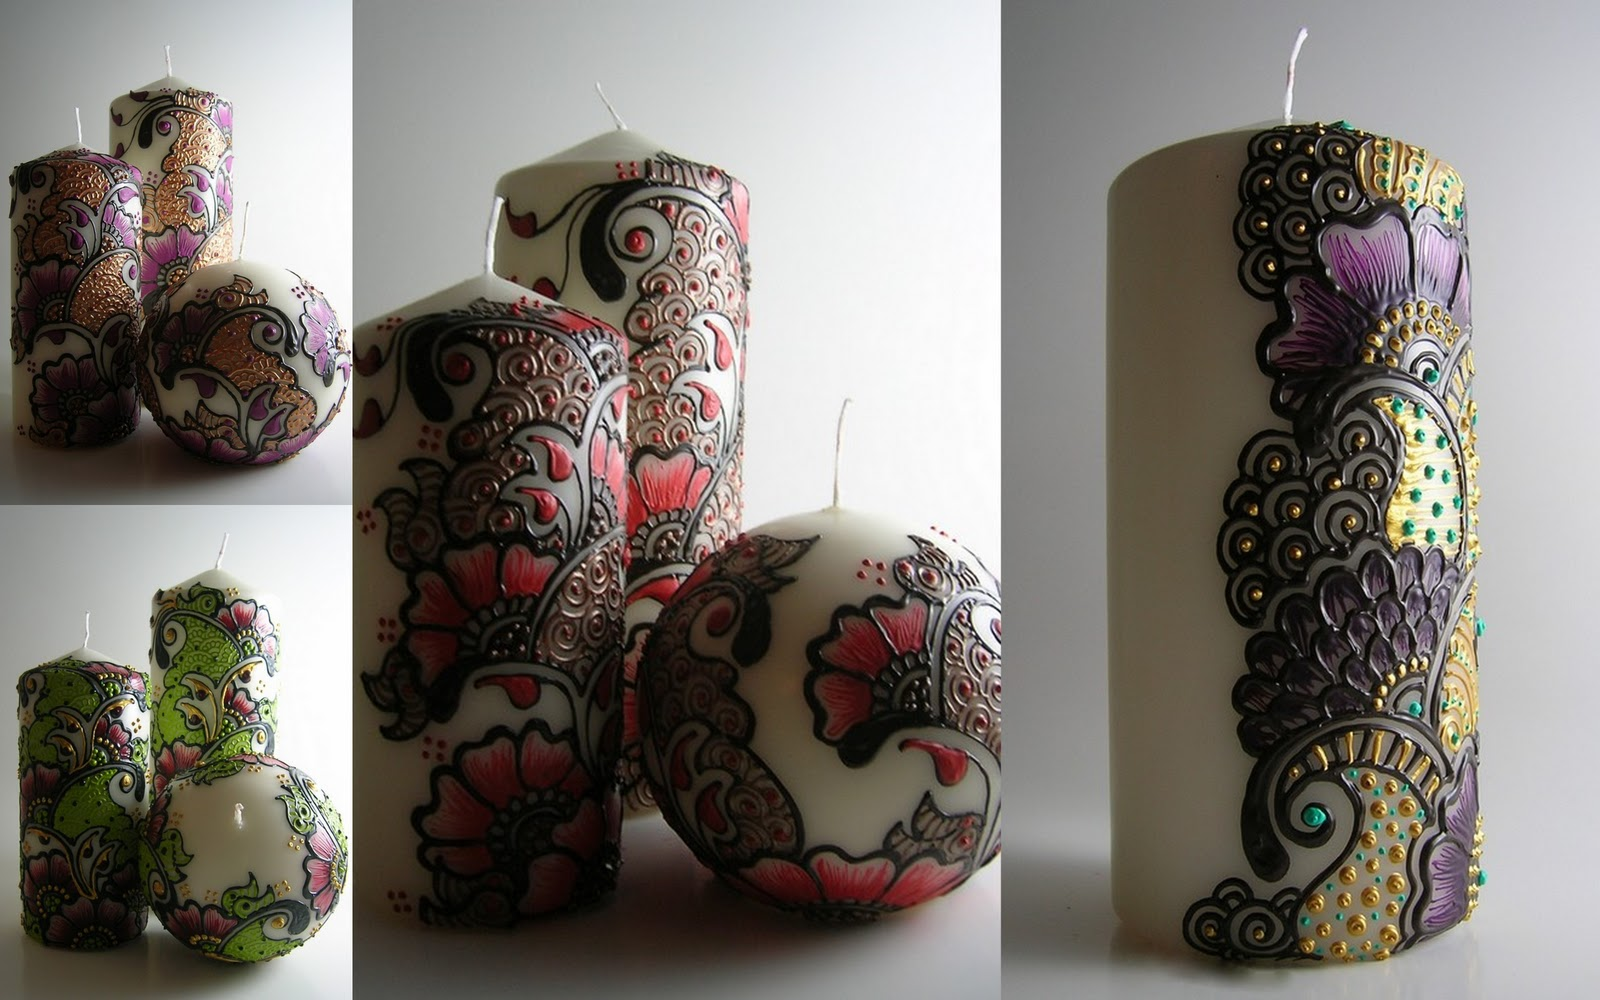 Sound Horn Please Etsy Find Henna Candles And Lanterns